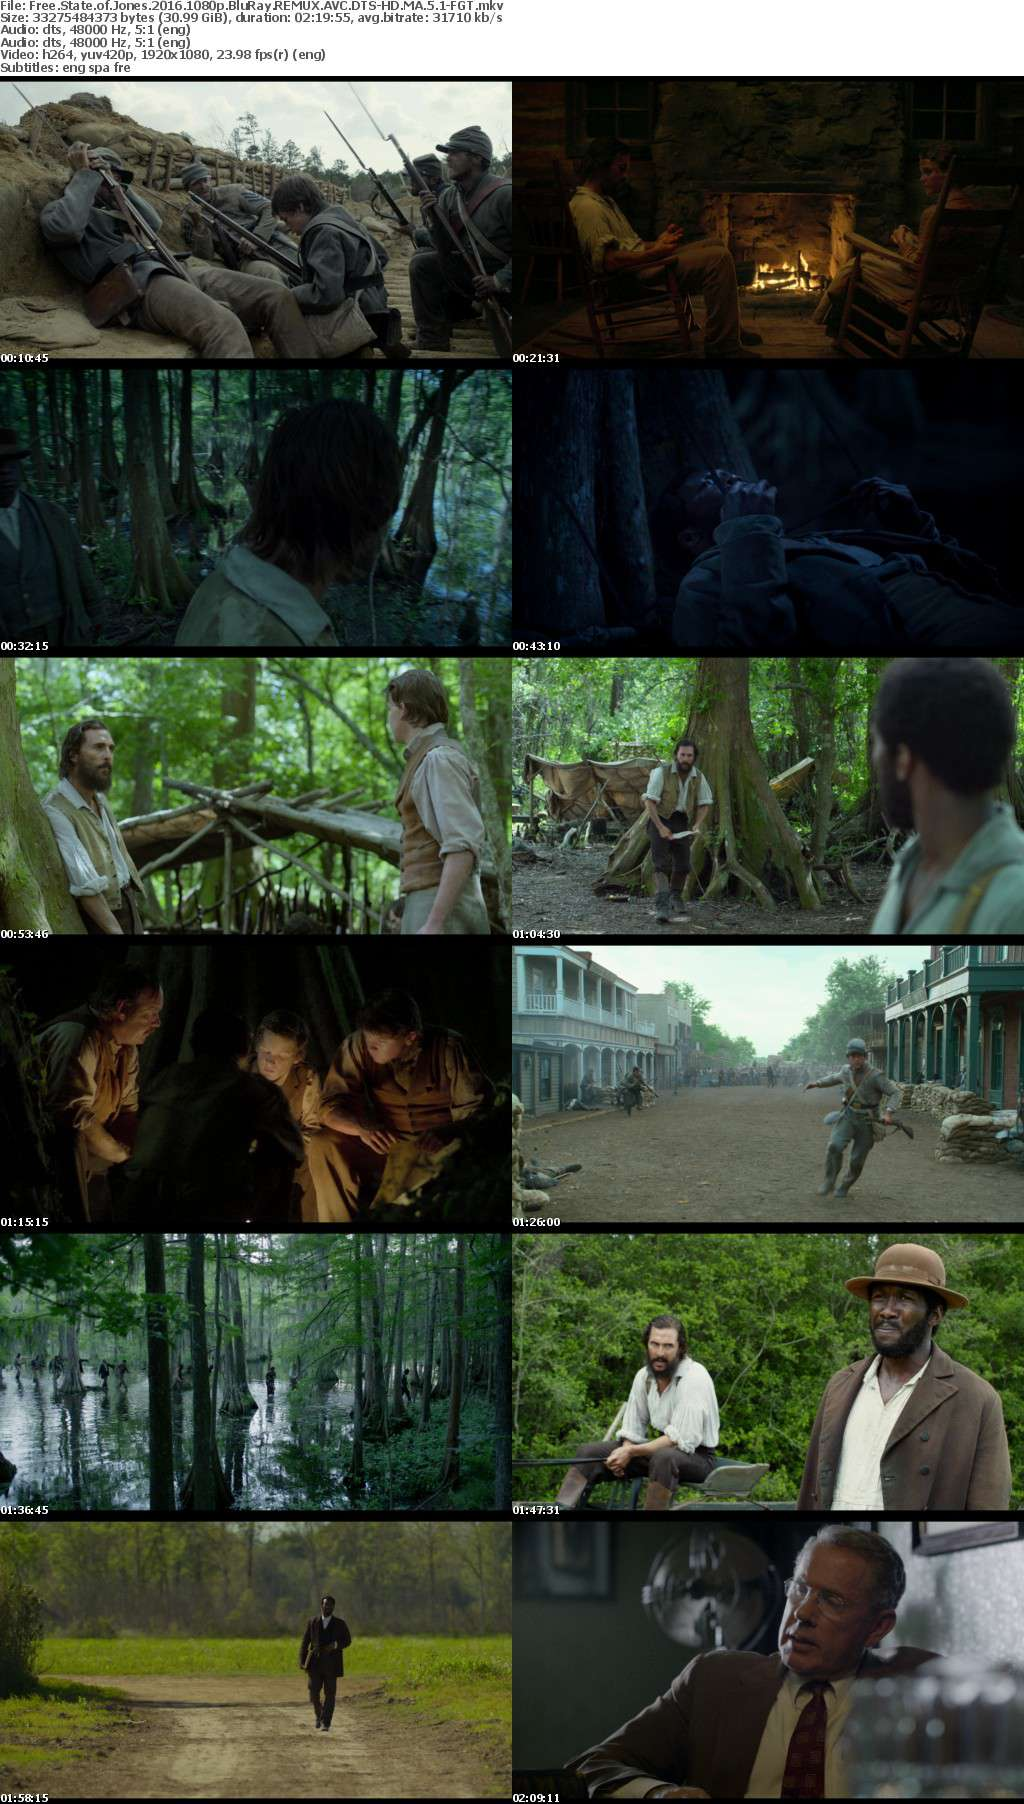 Free State of Jones 2016 1080p BluRay REMUX AVC DTS-HD MA 5 1-FGT